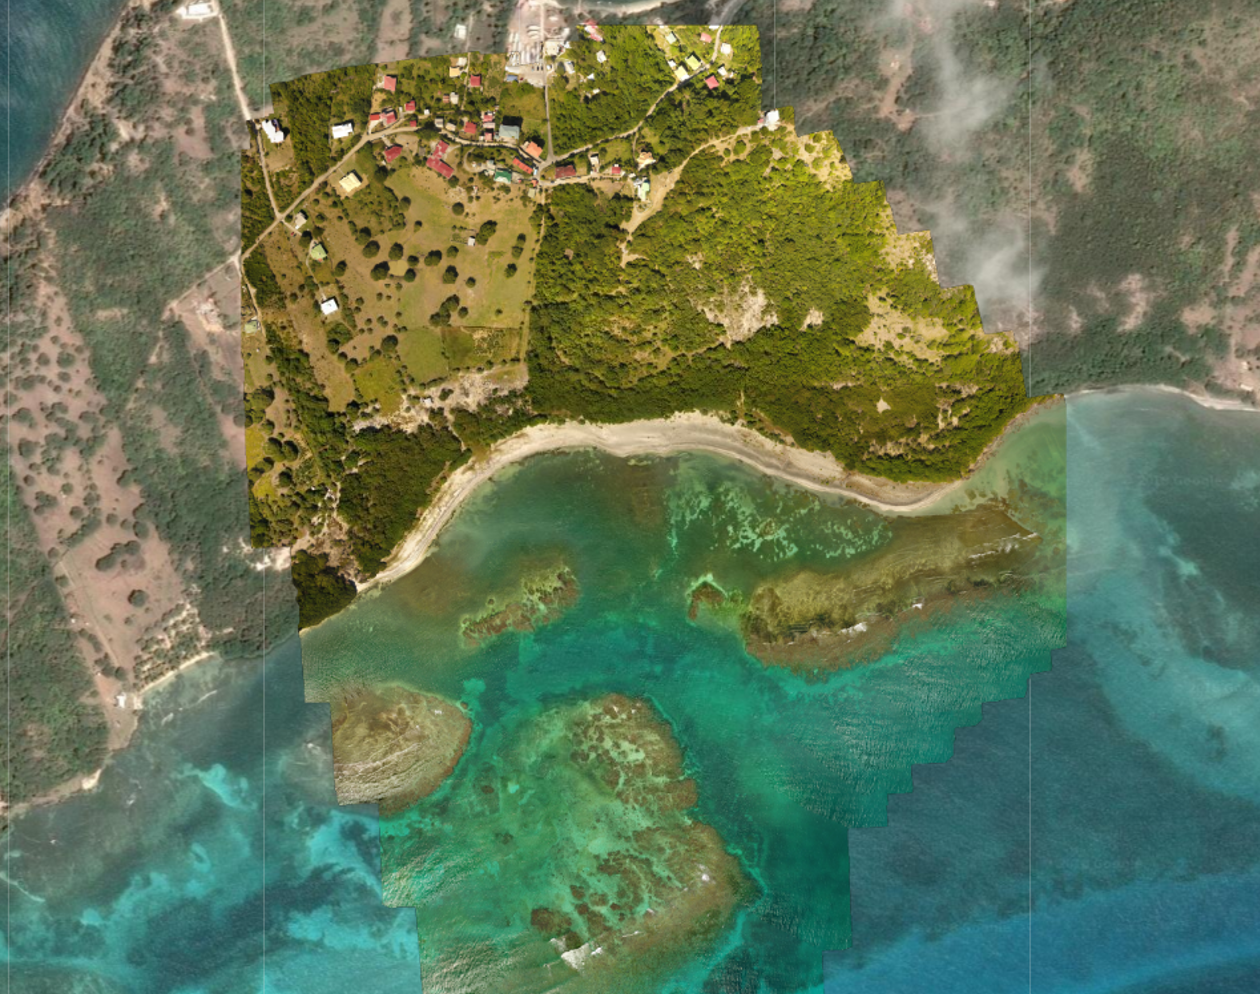 Advanced mapping  and analysis - Learn advanced drone mapping techniques and how to plan for larger survey areas. Participants will gain experience using UAS spatial analysis tools & GIS or Google Earth to collect baseline data and develop a monitoring plan to accurately quantify changes over time.